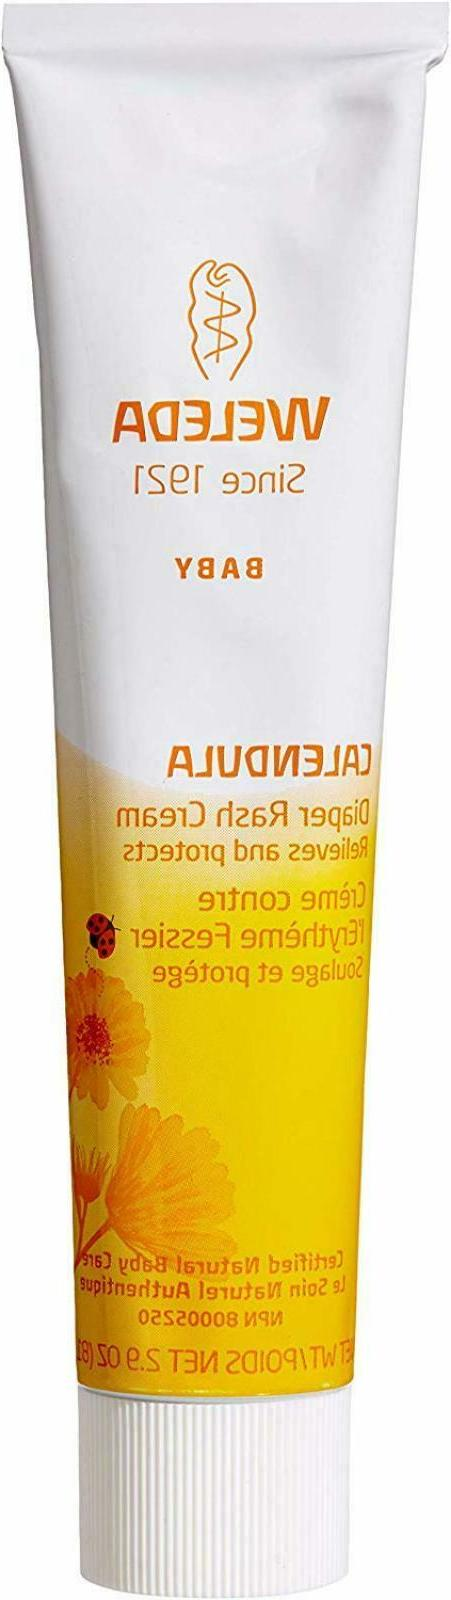 Weleda Diaper Rash Cream Calendula Gentle Relief Baby Health